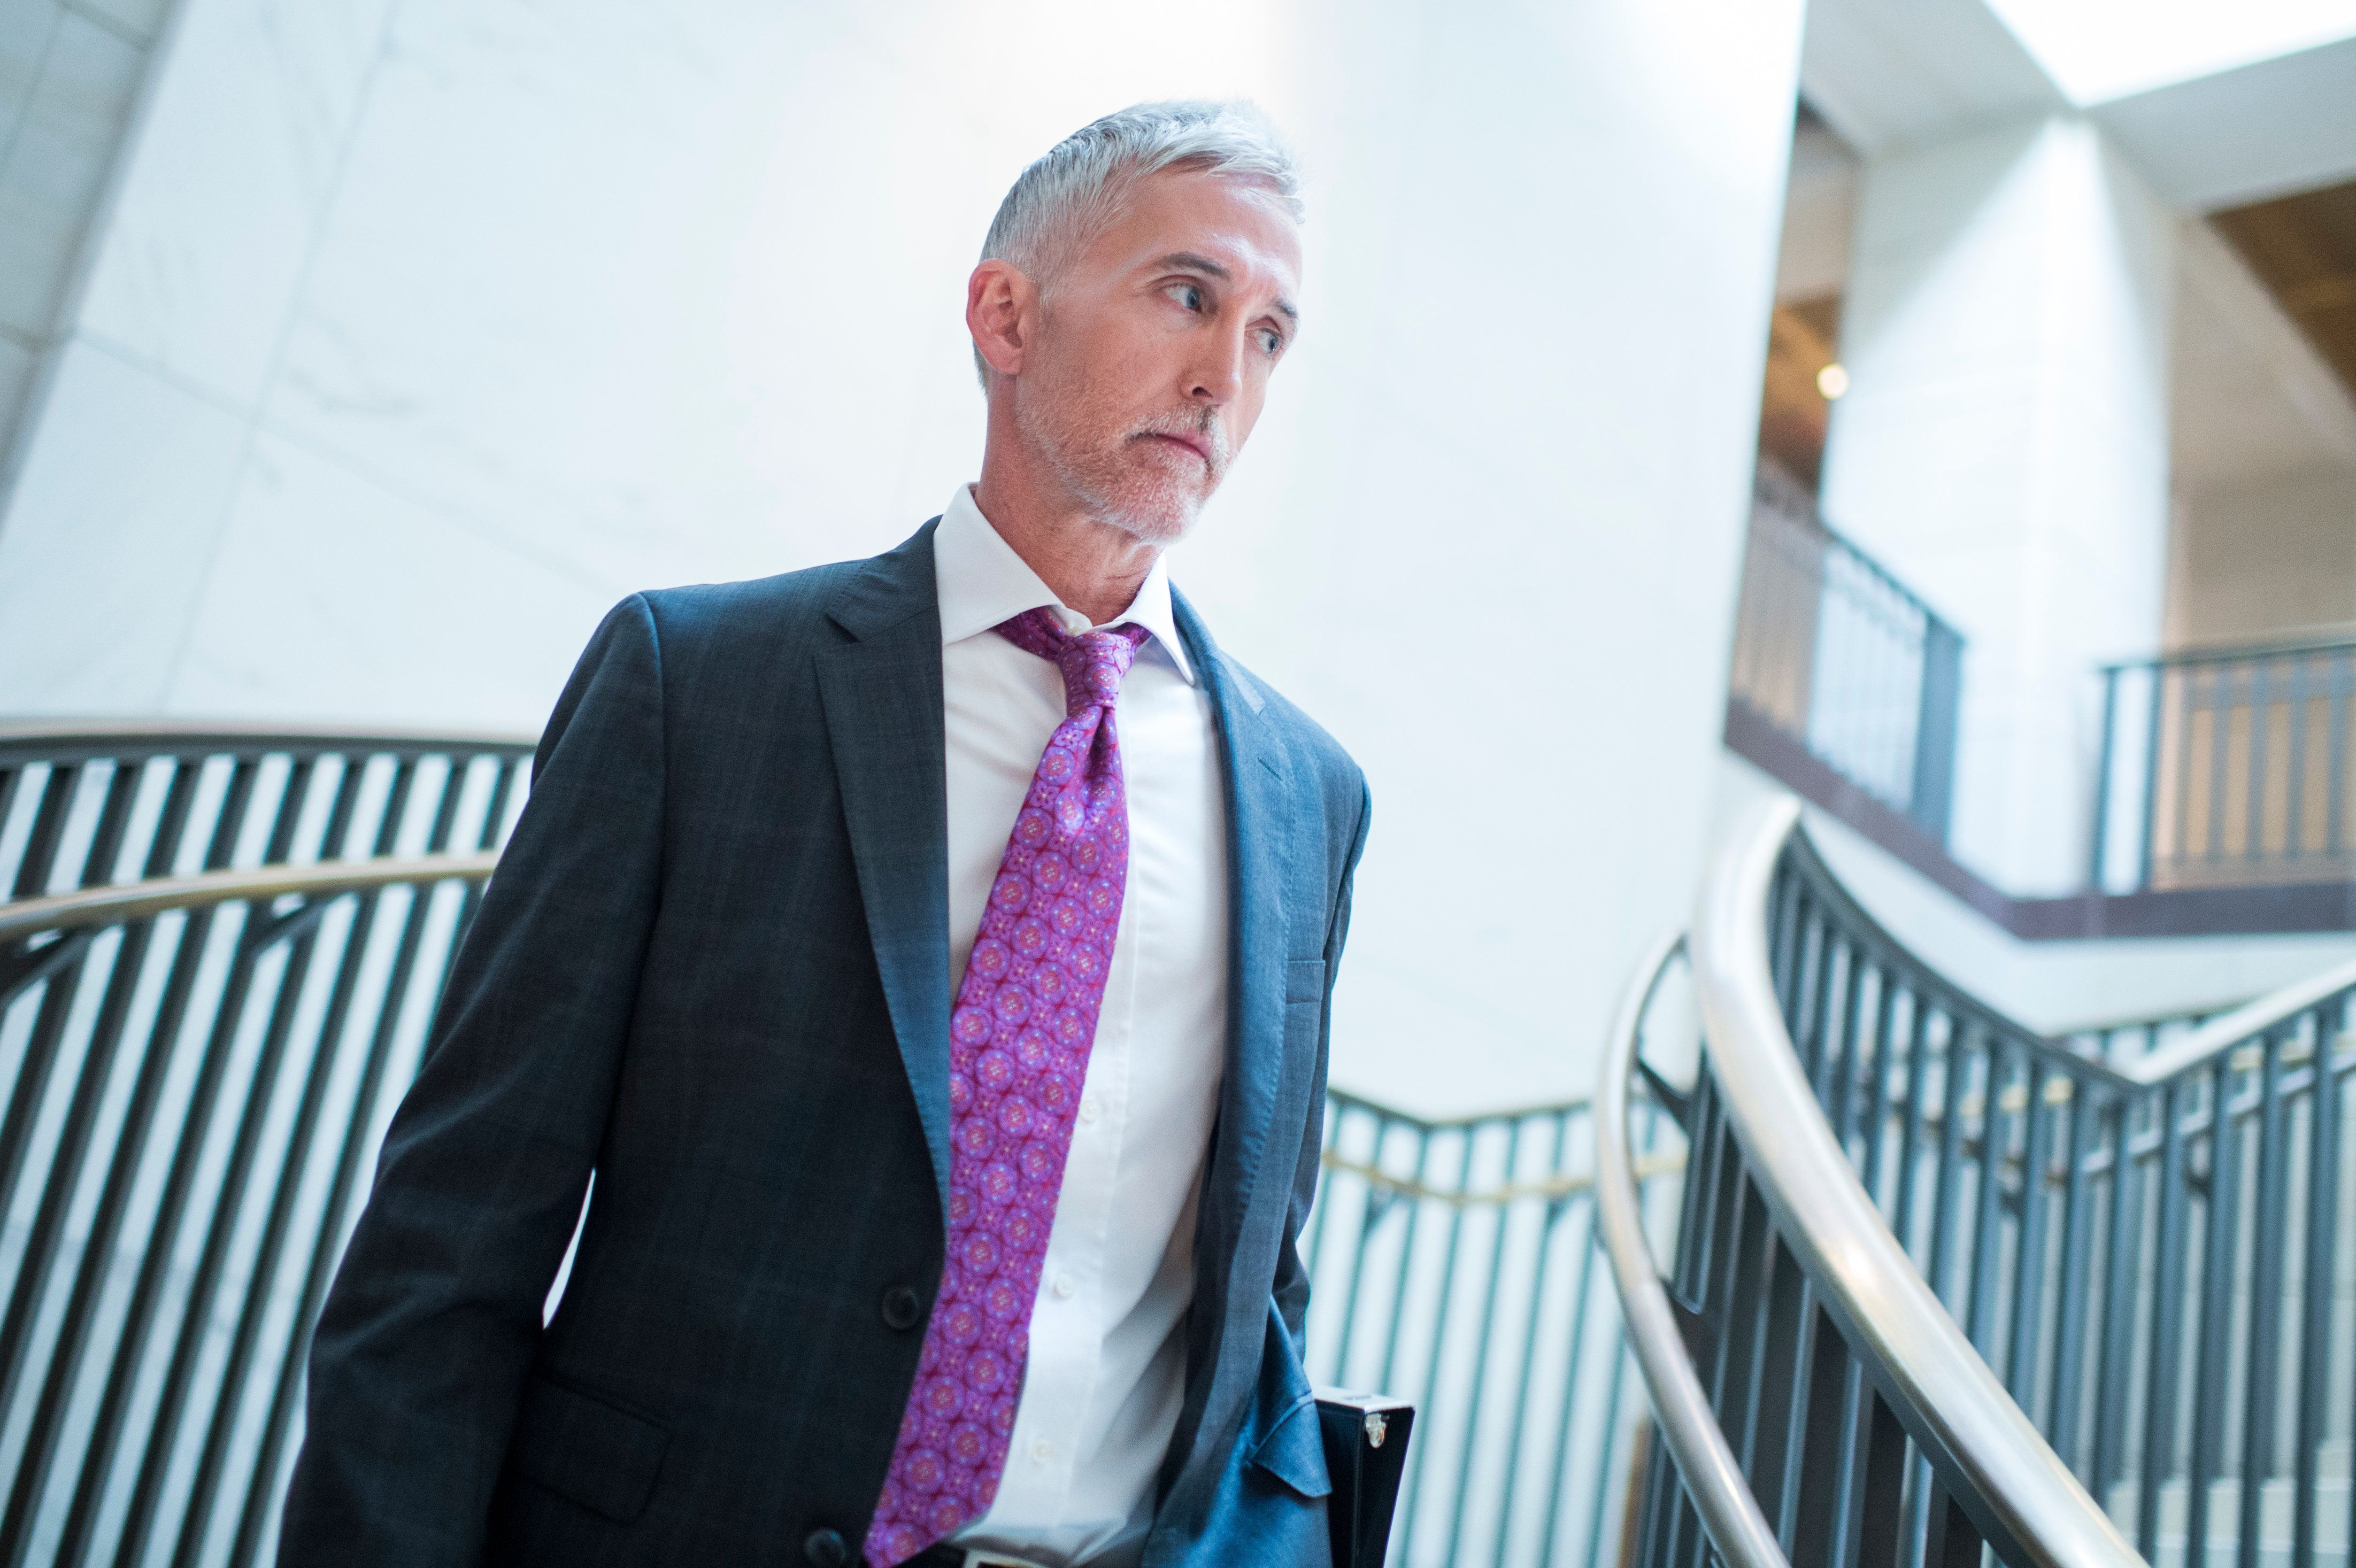 Rep. Trey Gowdy (R-S.C.) arrives for a House Intelligence Committee on July 25, 2017.